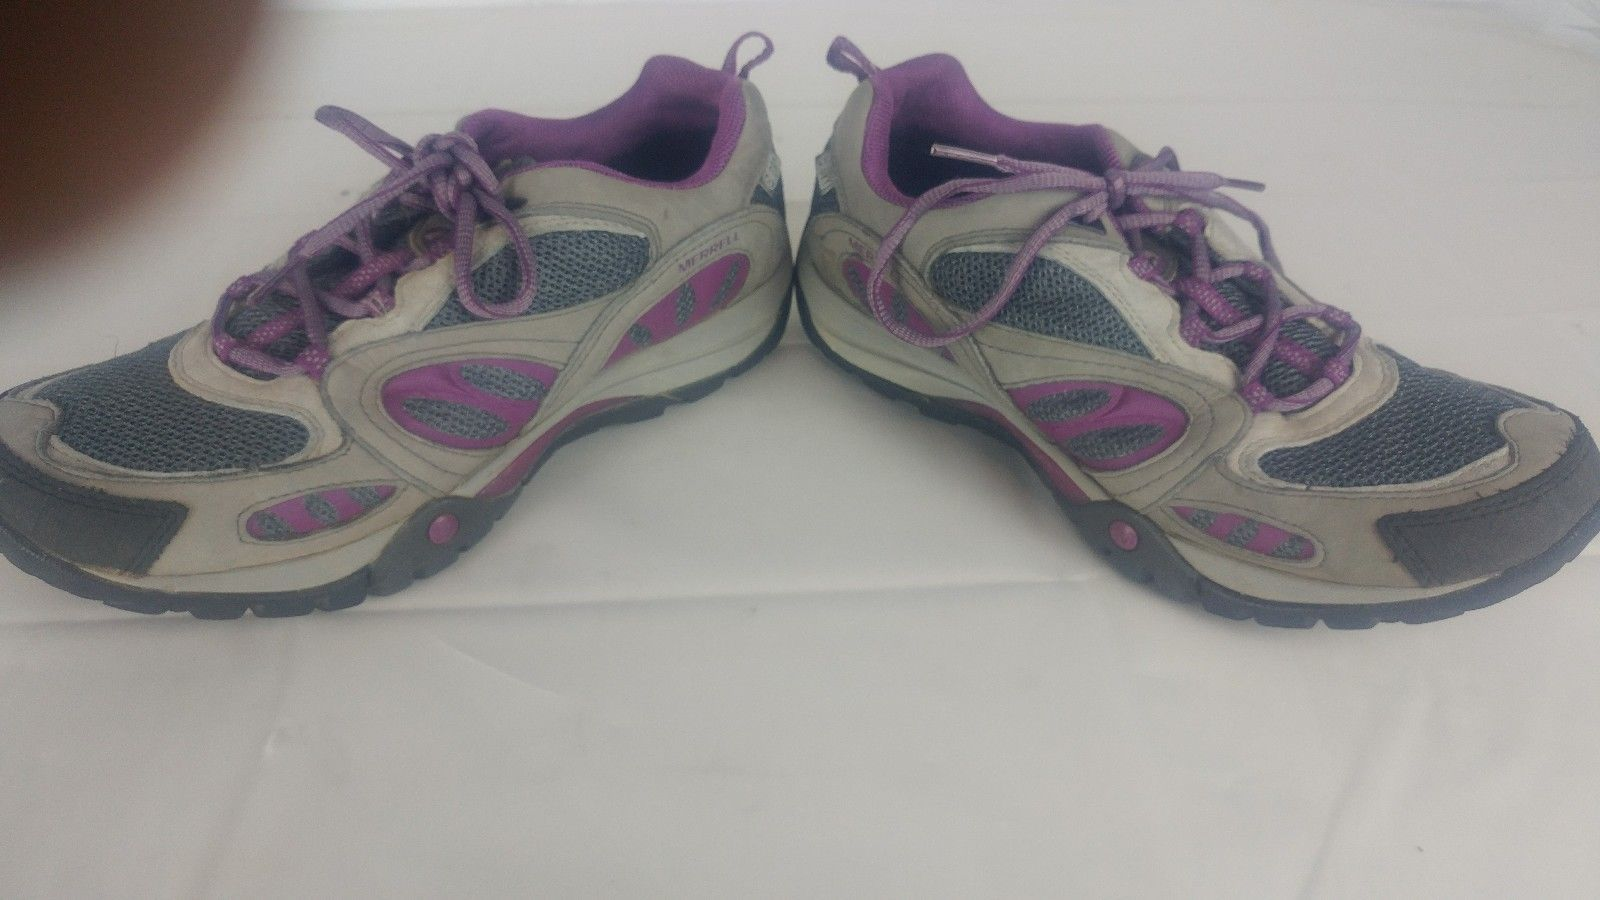 Merrell Women's Air Cushion Select Dry/Grip Grey/Purple Size 8.5